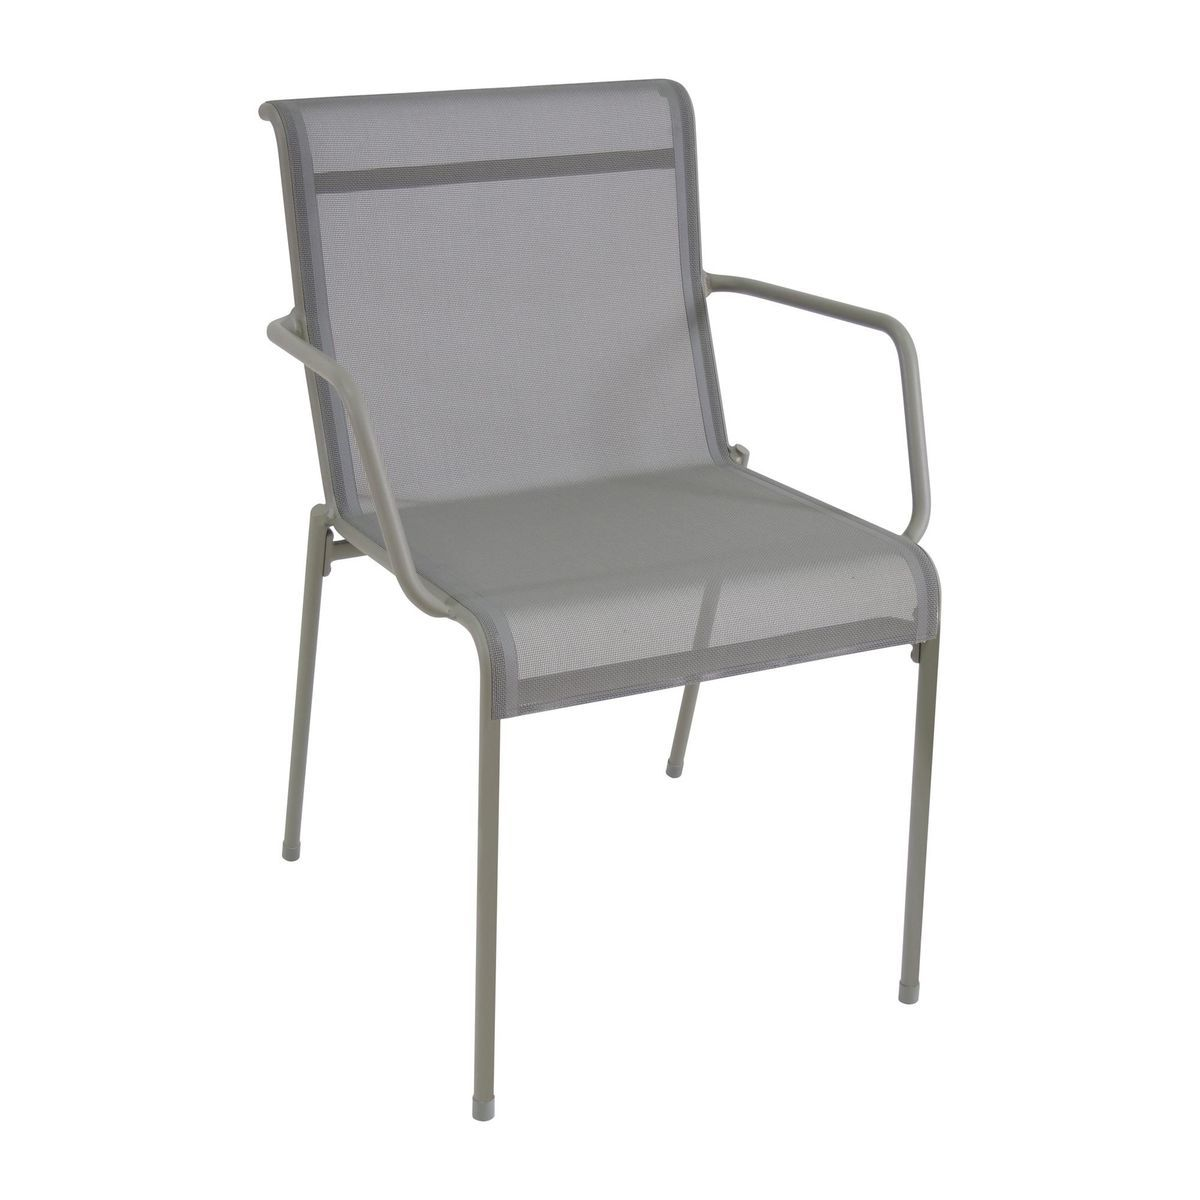 Emu   Kira Armchair Outdoor   Grey/Emu Tex/LxWxH 58x58x82cm